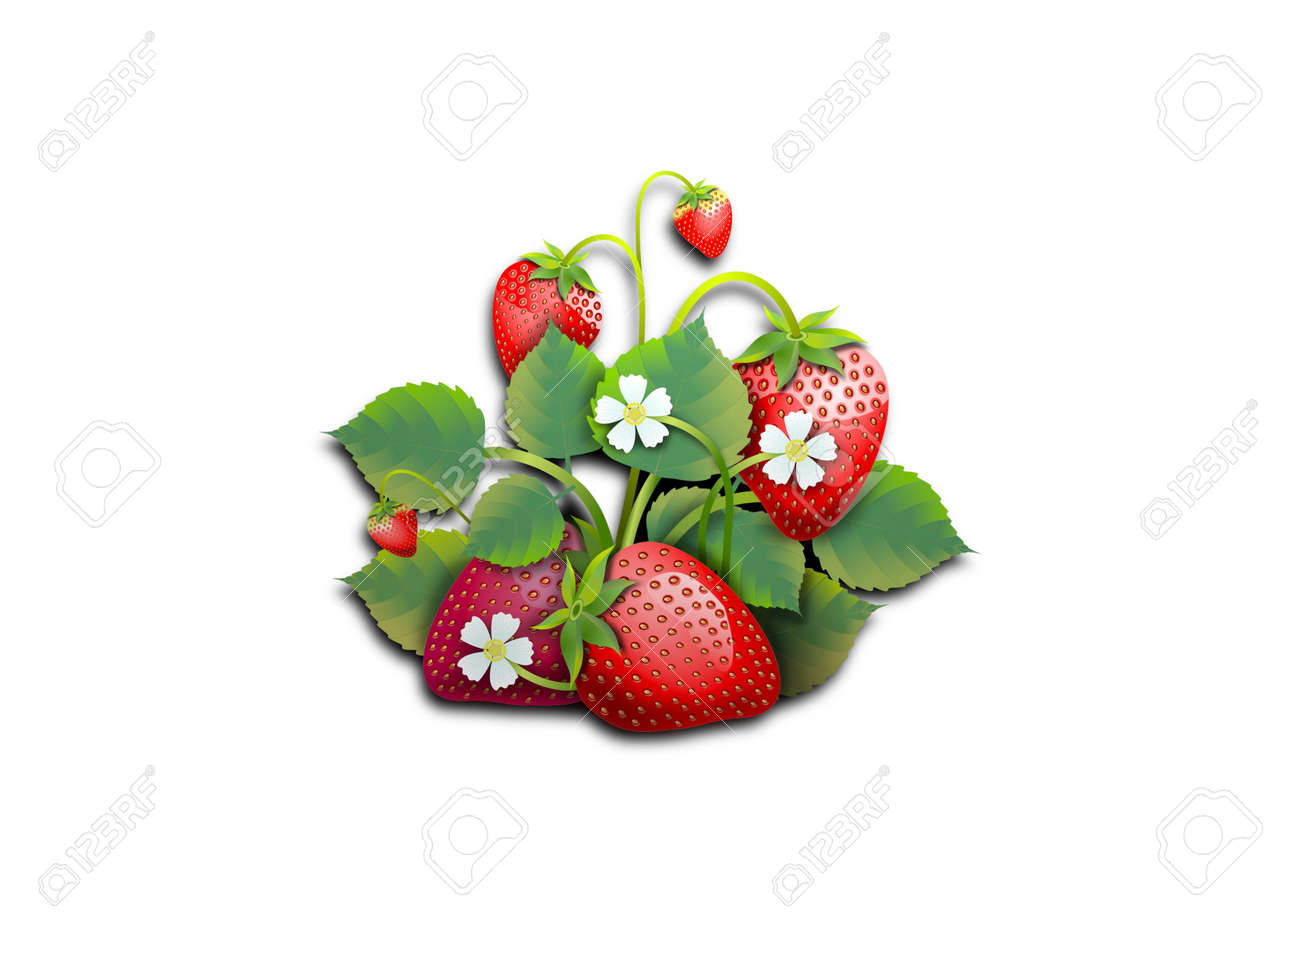 Several strawberries with leaves on white - 154623227